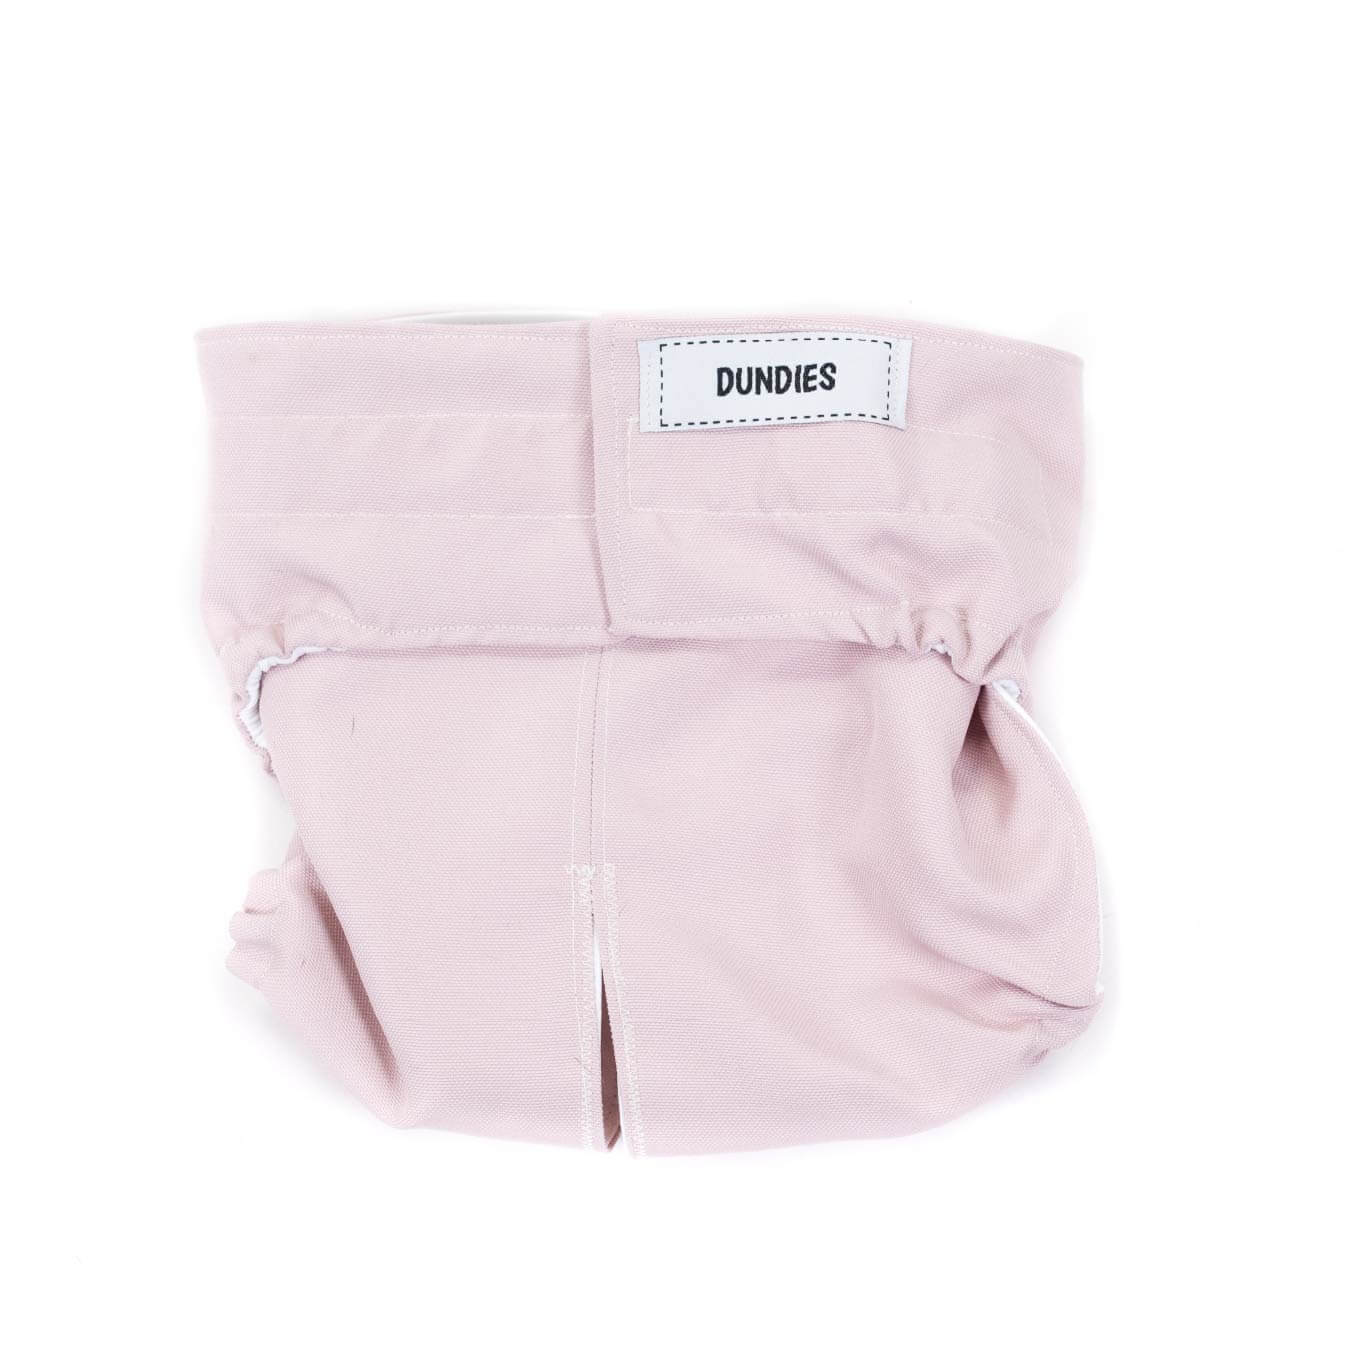 Dundies Dusty Pink All In One Nappy - Vanillapup Online Pet Store